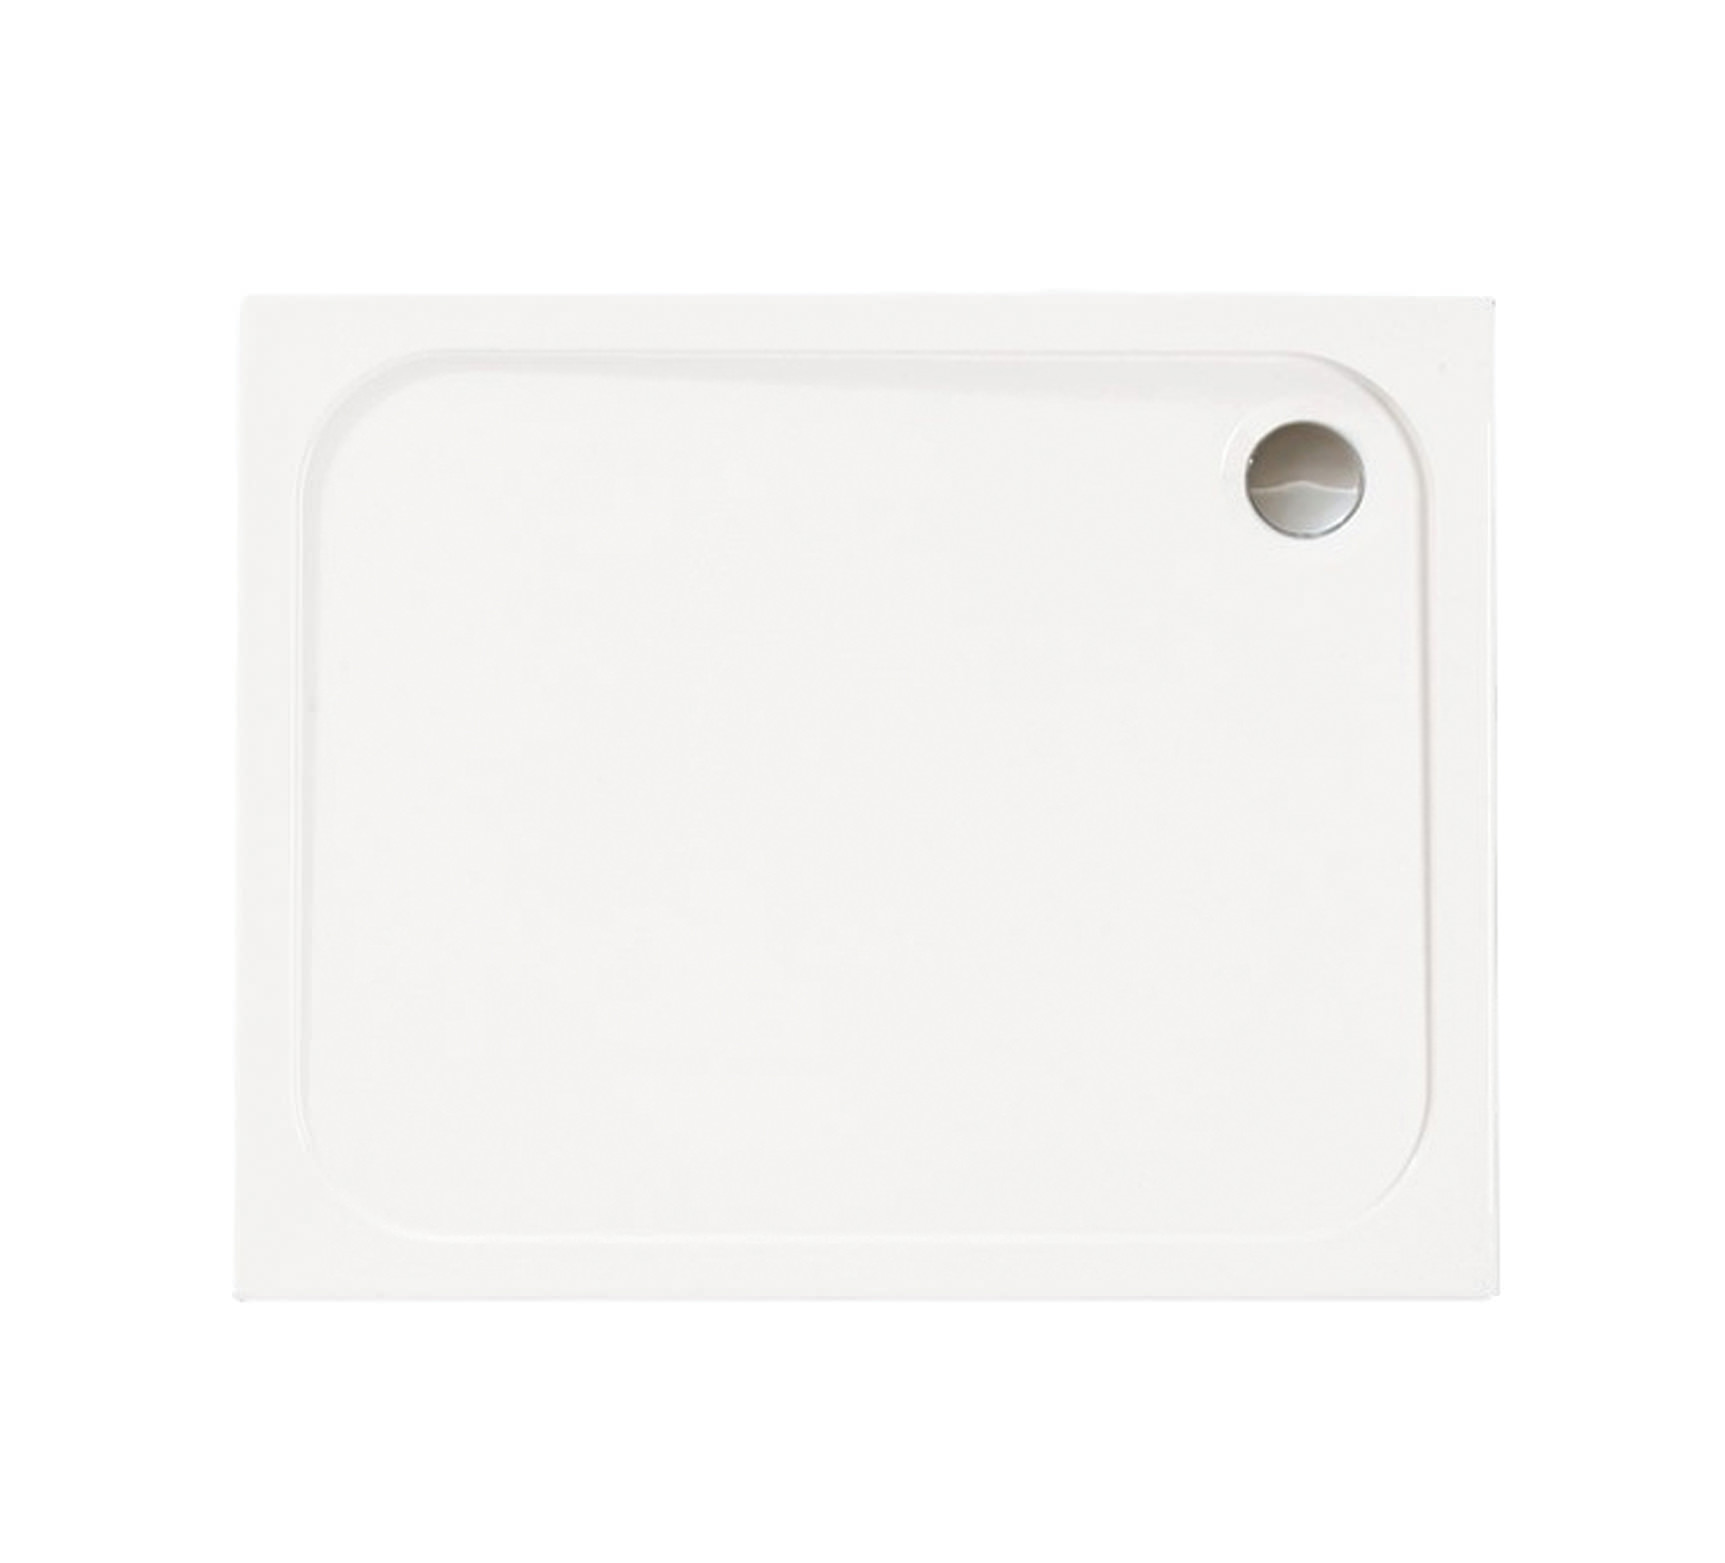 Merlyn Mstone Rectangular Shower Tray with waste 1500 x 800mm